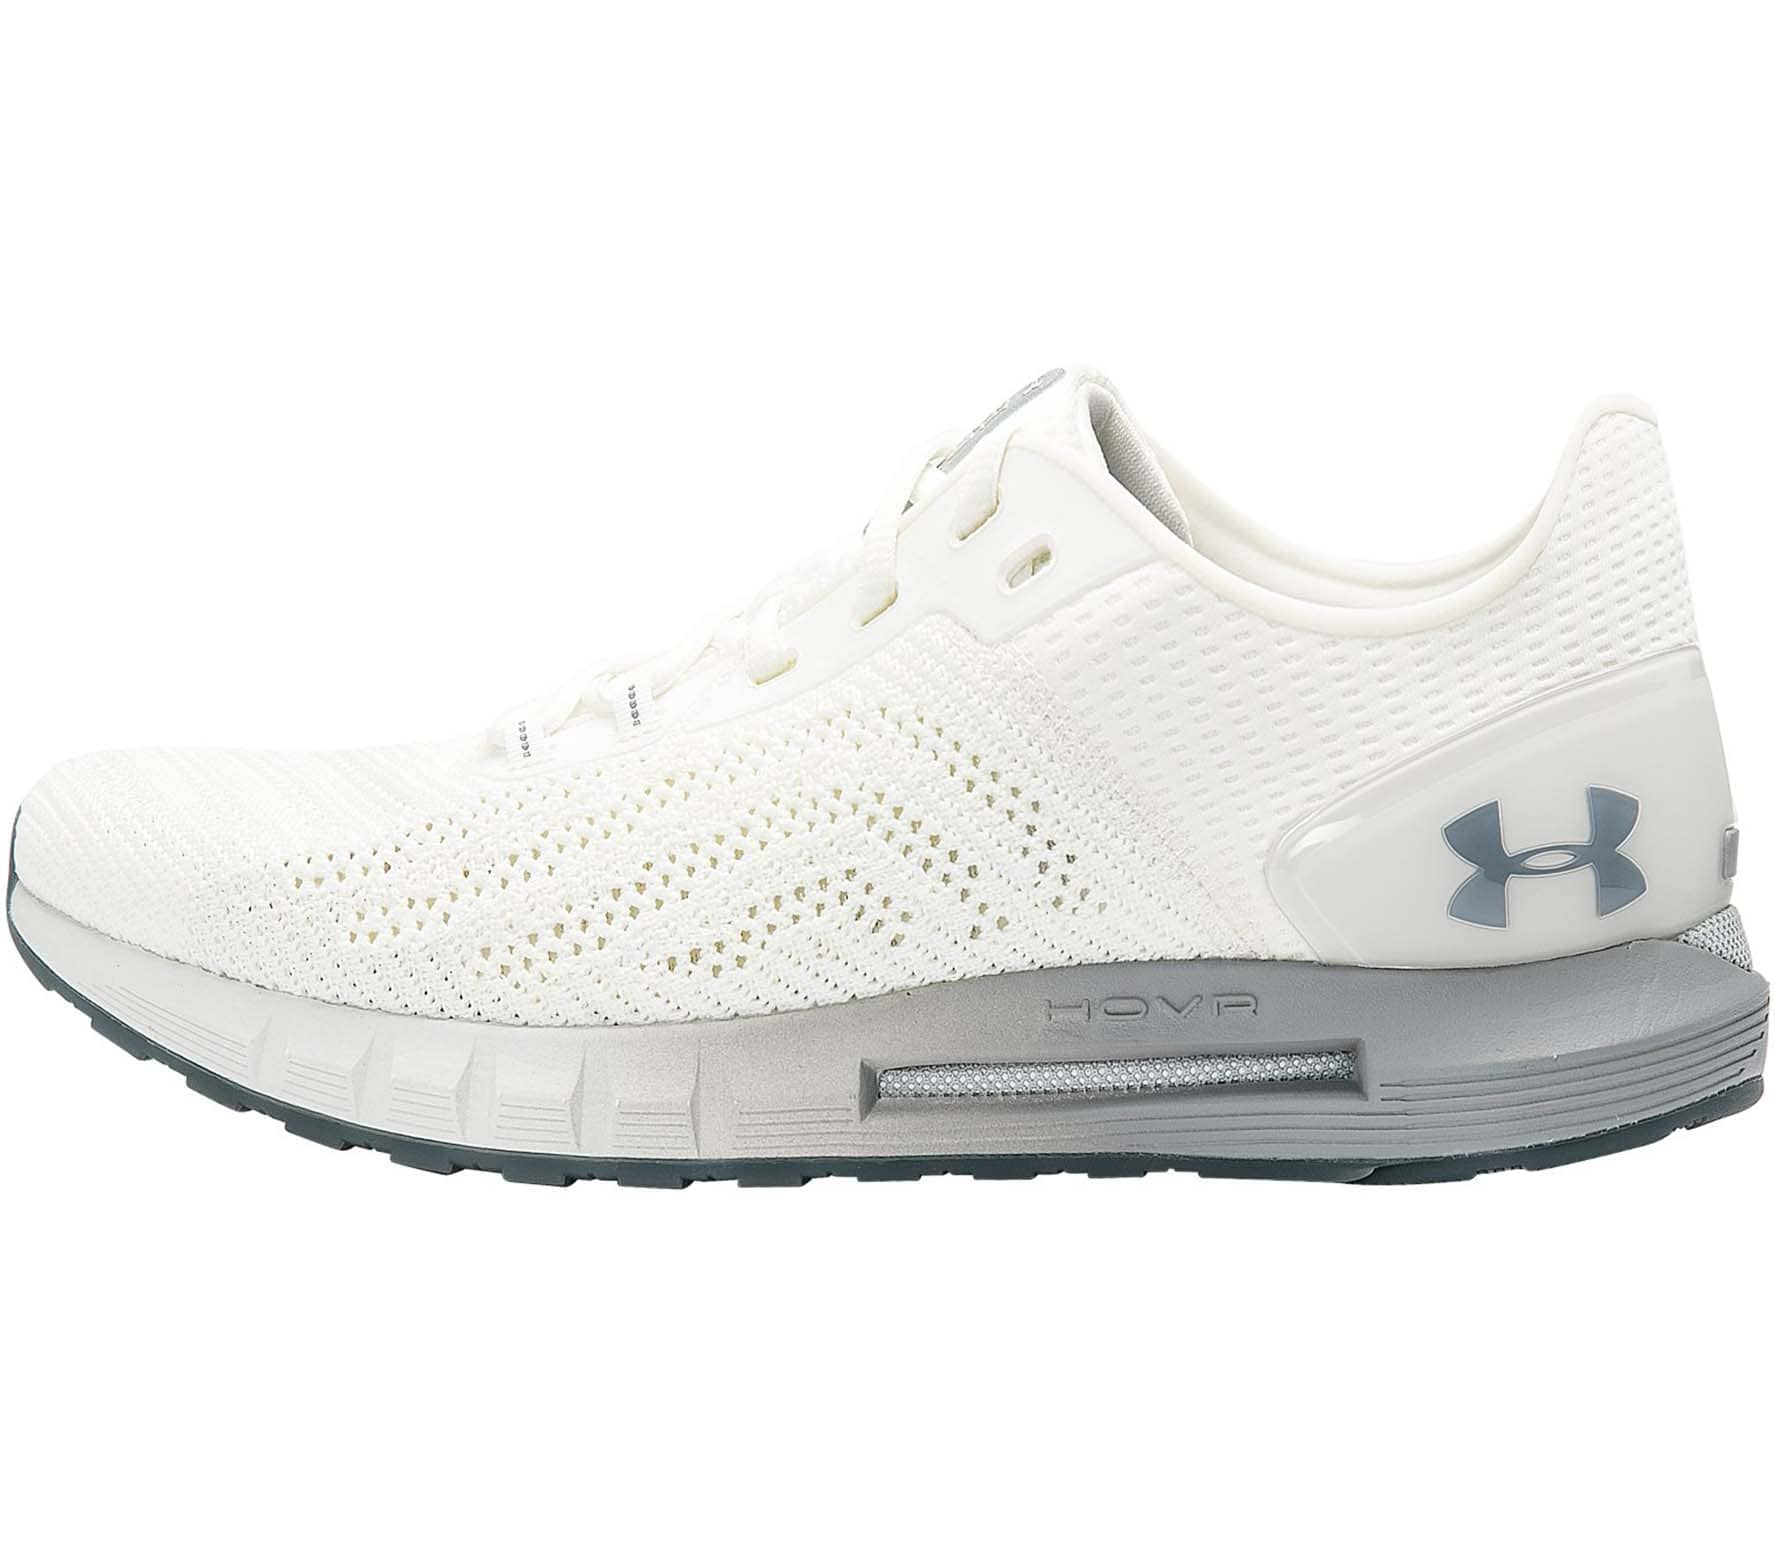 reputable site 1f712 bd562 Under Armour Hovr Sonic 2 Men white